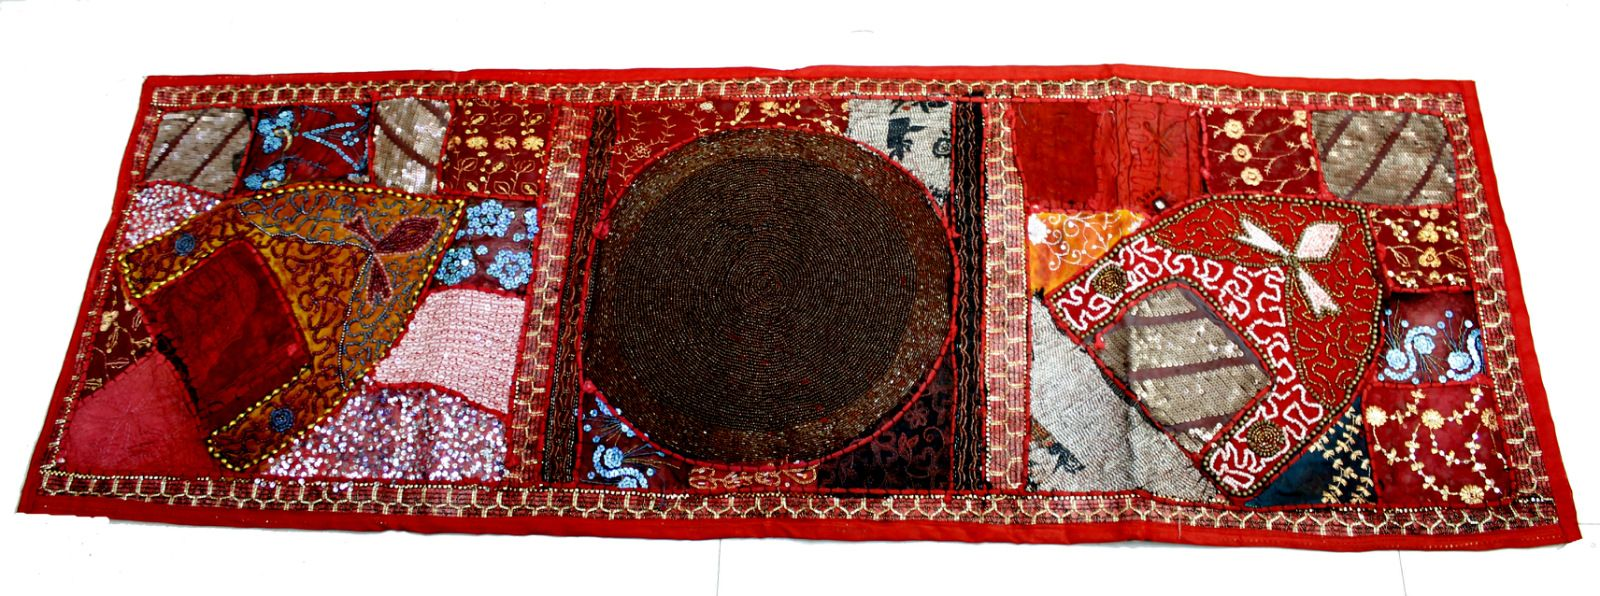 (SKU NO:Heavy Beads Circle Table Runner 103a) Red Indian Table Runner Hand